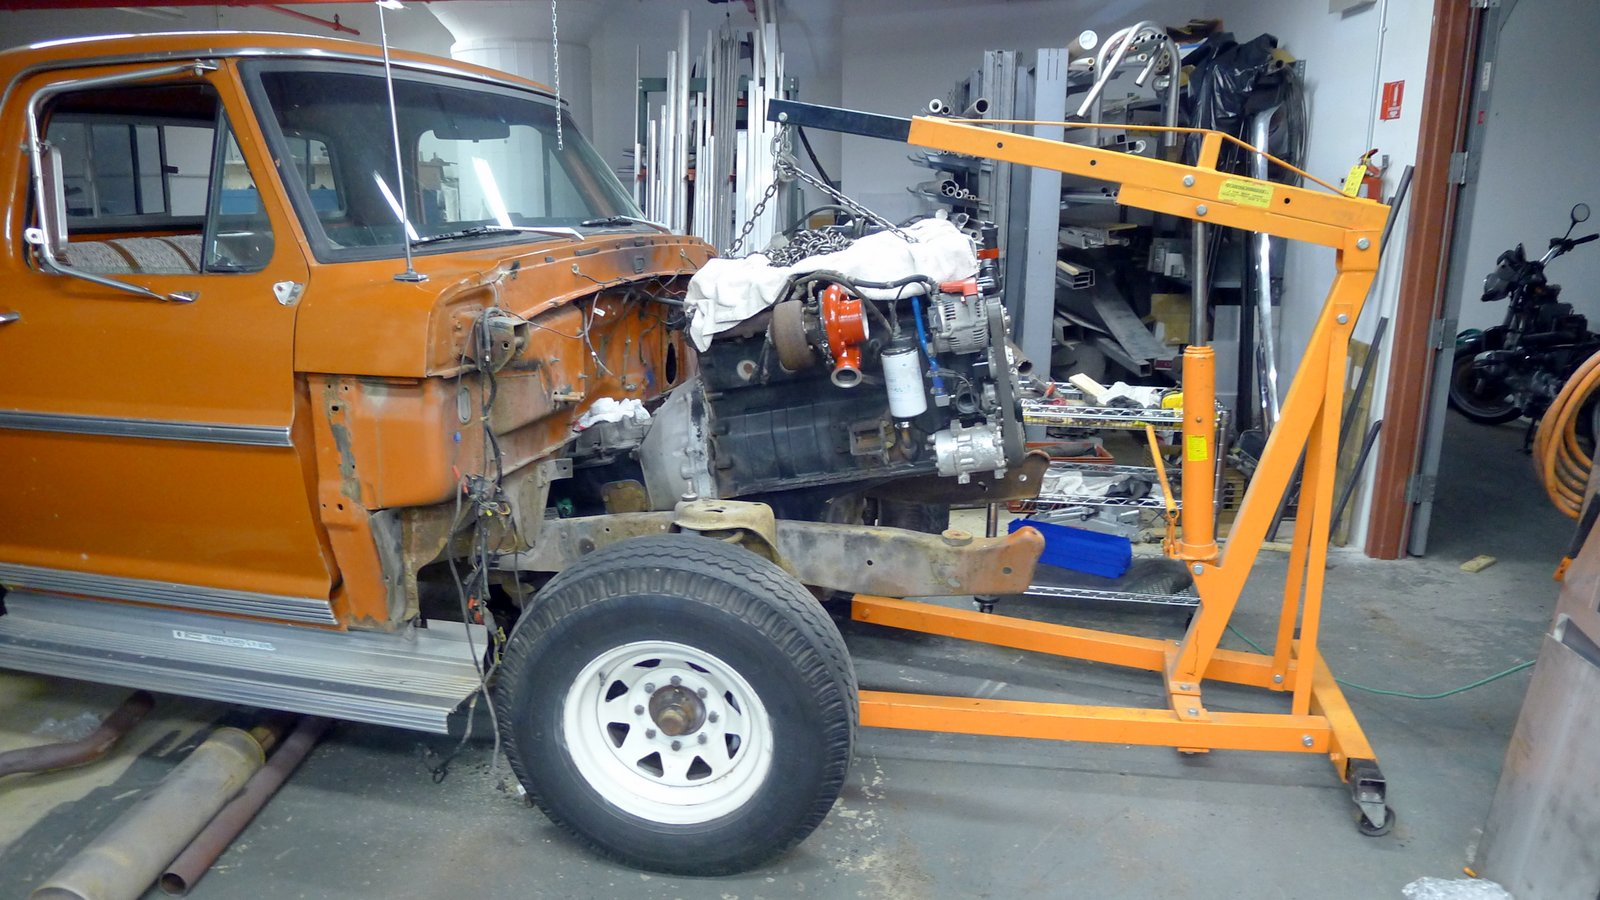 A Diesel Conversion Of 1969 Ford F250 Camper Special Test Fitting F 250 Looks Like It Will Be Fairly Straight Forward Fit We May Have To Notch The Cross Right In Front Transmission Brace By